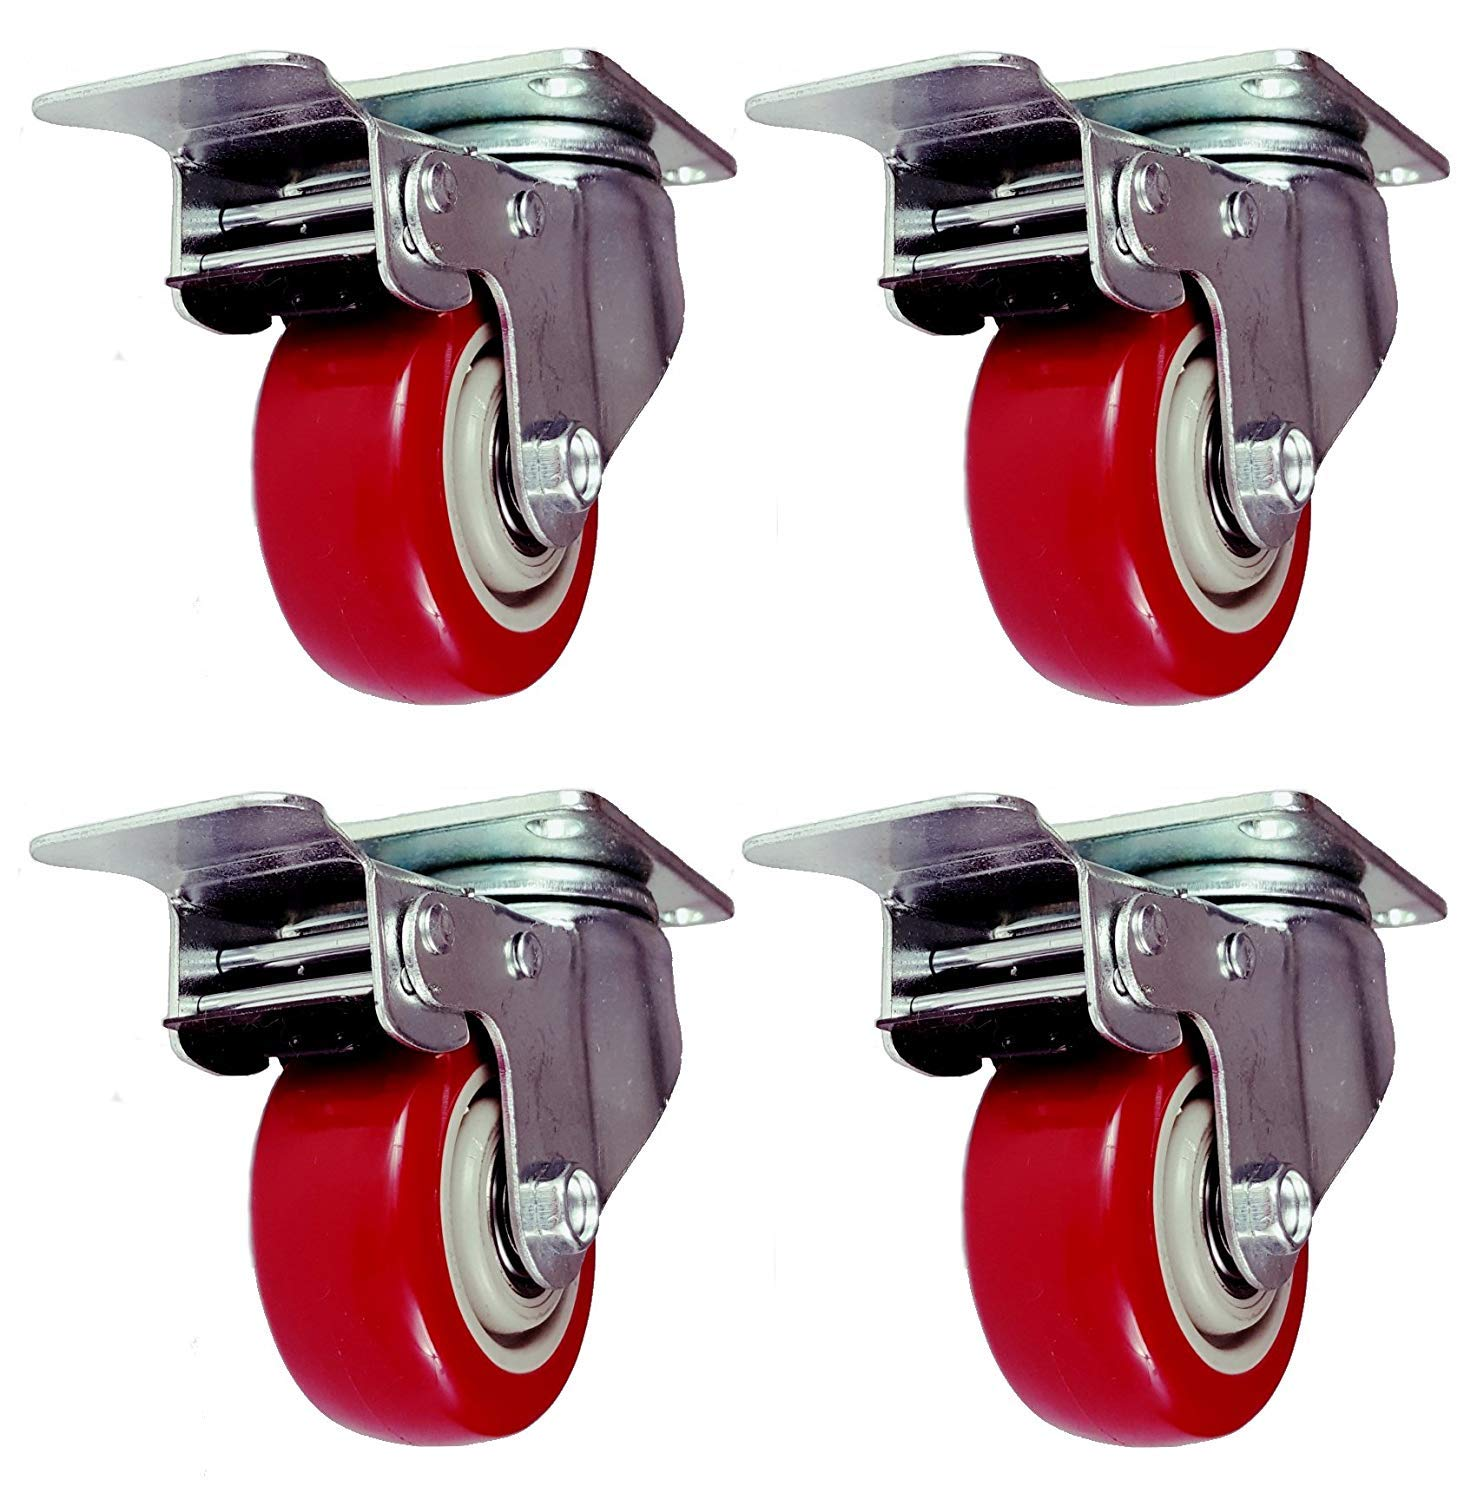 Online Best Service 4 Pack 5 Inch Caster Wheels Swivel Plate with Brake on Red Polyurethane Heavy Duty Wheels